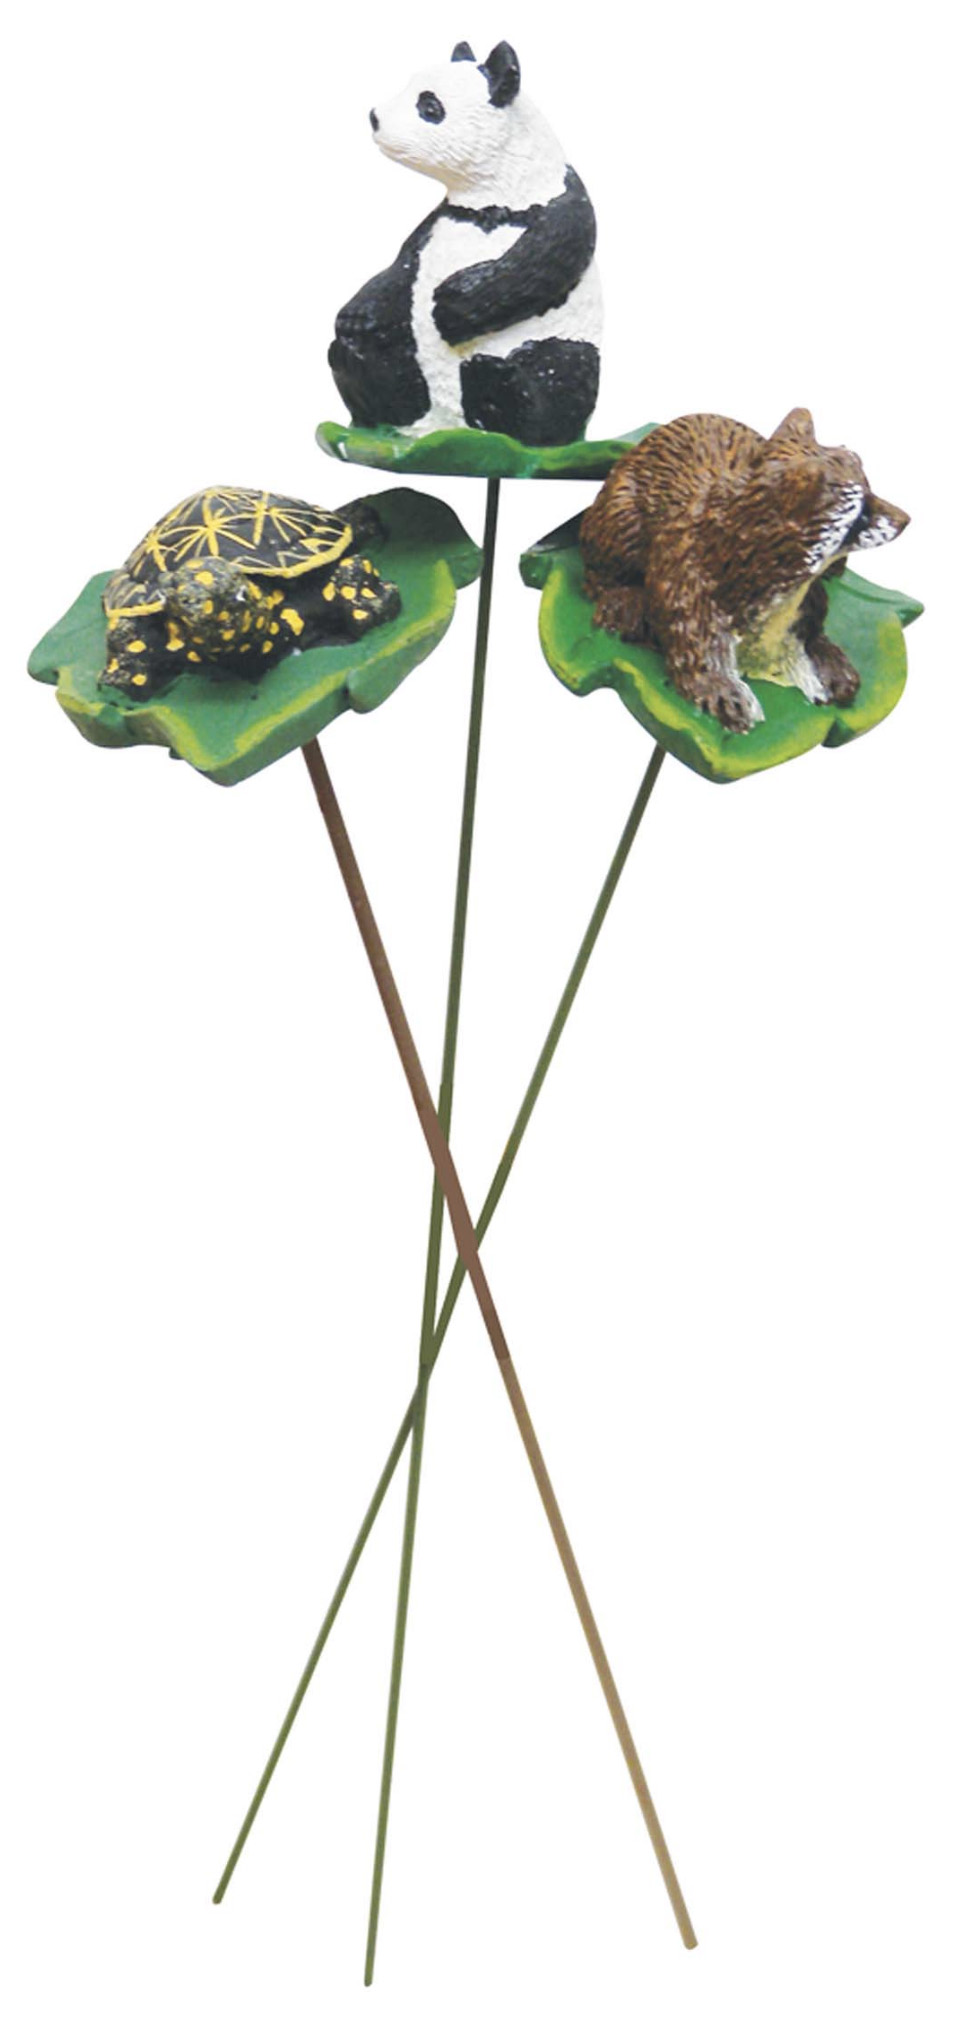 View LAND & SEA DECORATIVE PLANT STAKES 9 INCH ASSORTED ANIMAL DESIGNS